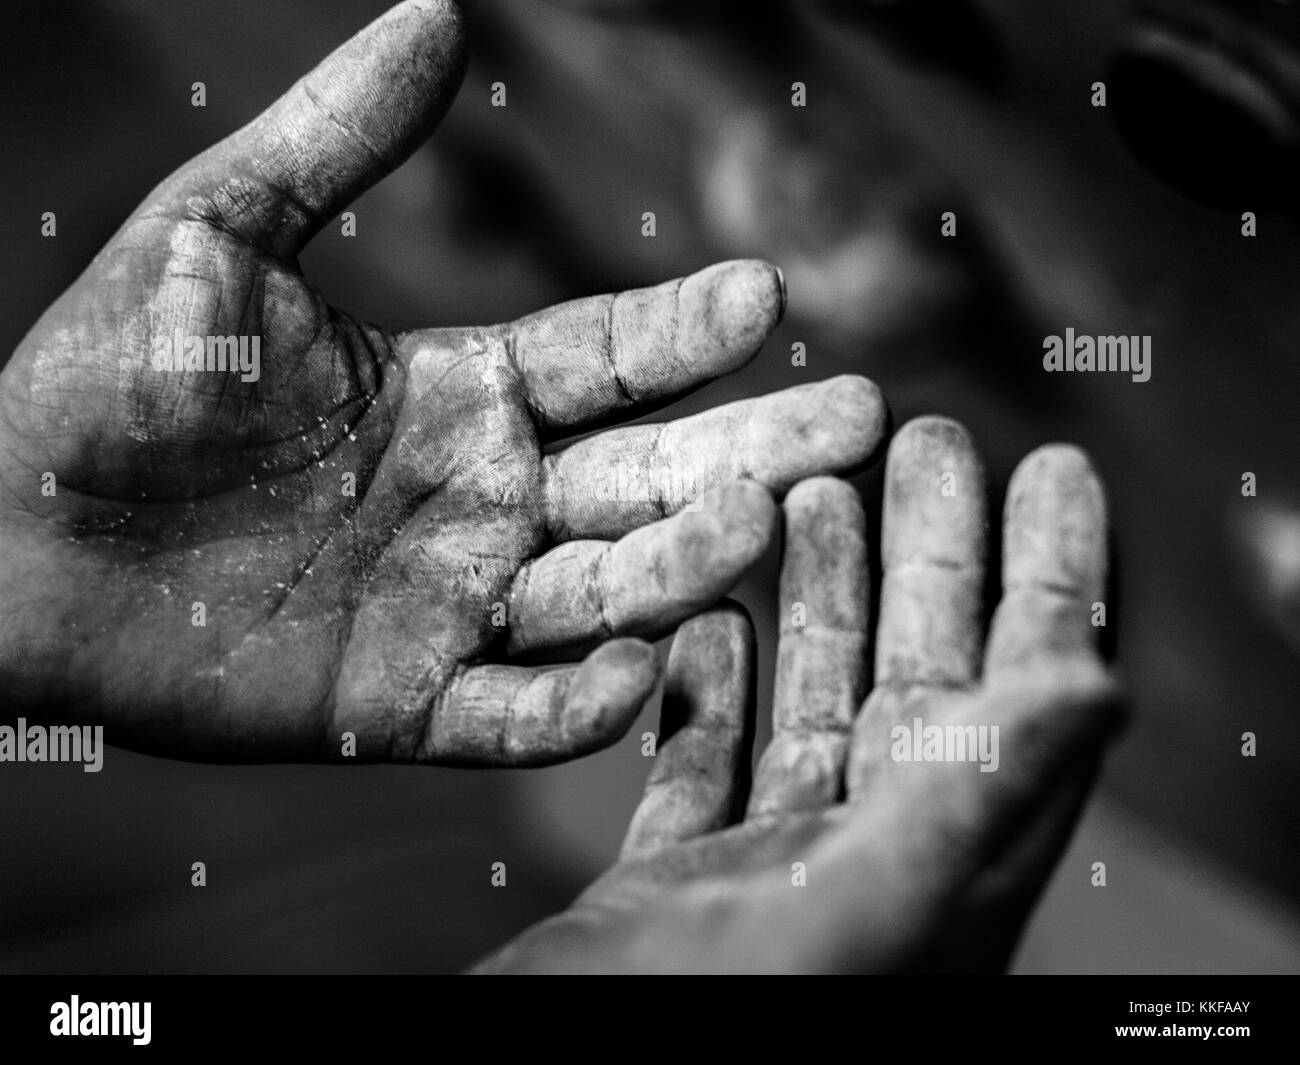 side view of the both palms of a male. Black and white photograph of both palms covered in chalk. wrinkled palms - Stock Image